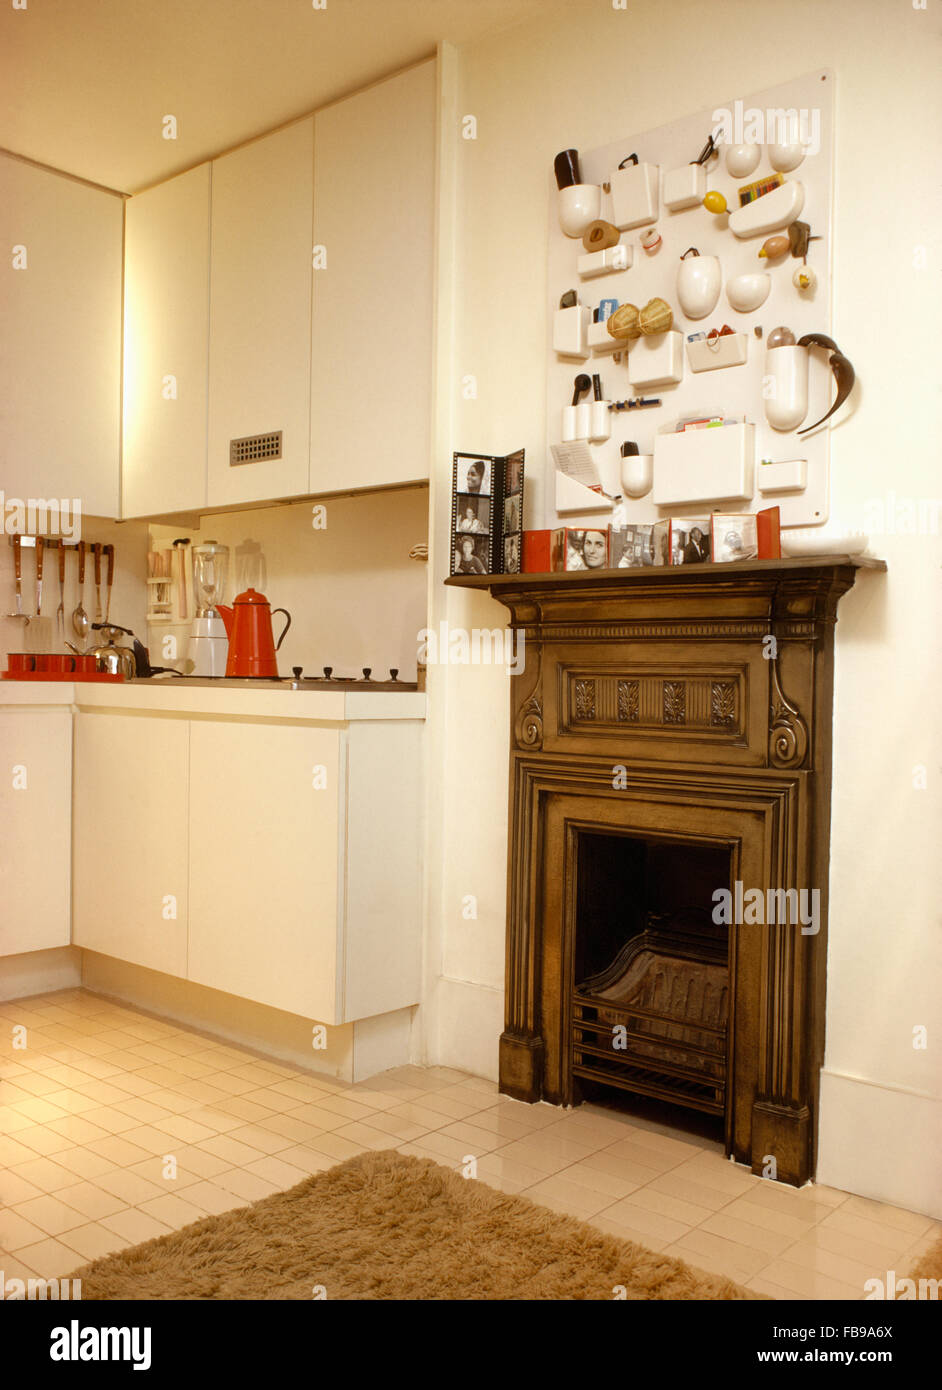 moulded white plastic storage unit above cast iron fireplace in